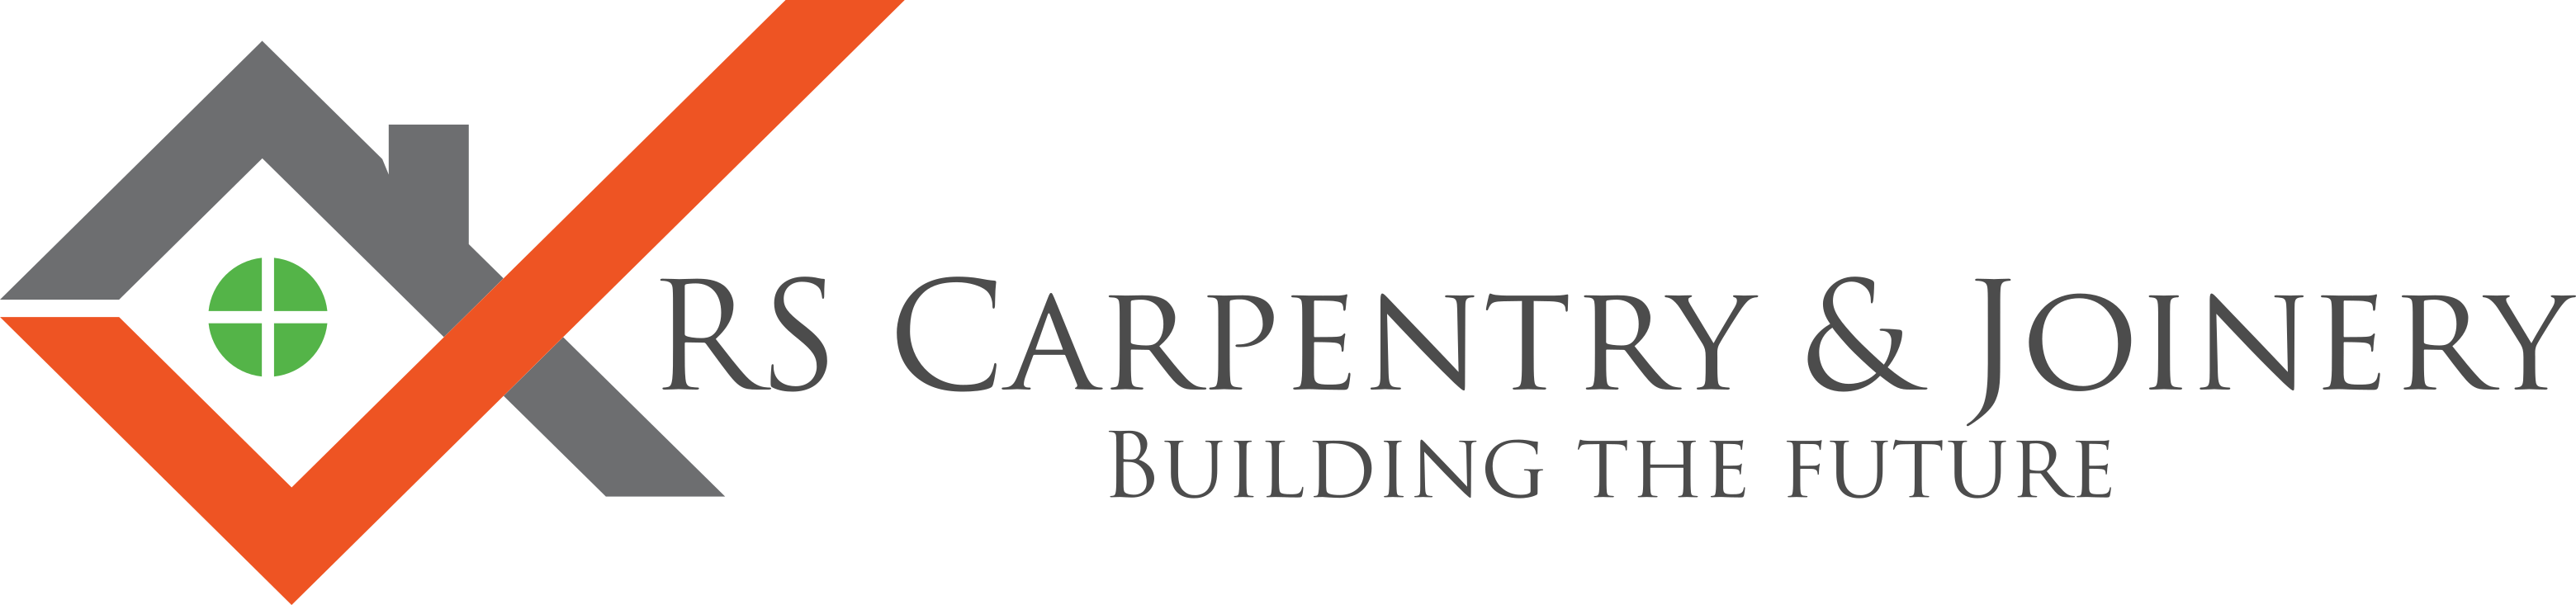 RS Carpentry & Joinery - Redruth, Cornwall TR15 3AB - 07946 001658 | ShowMeLocal.com